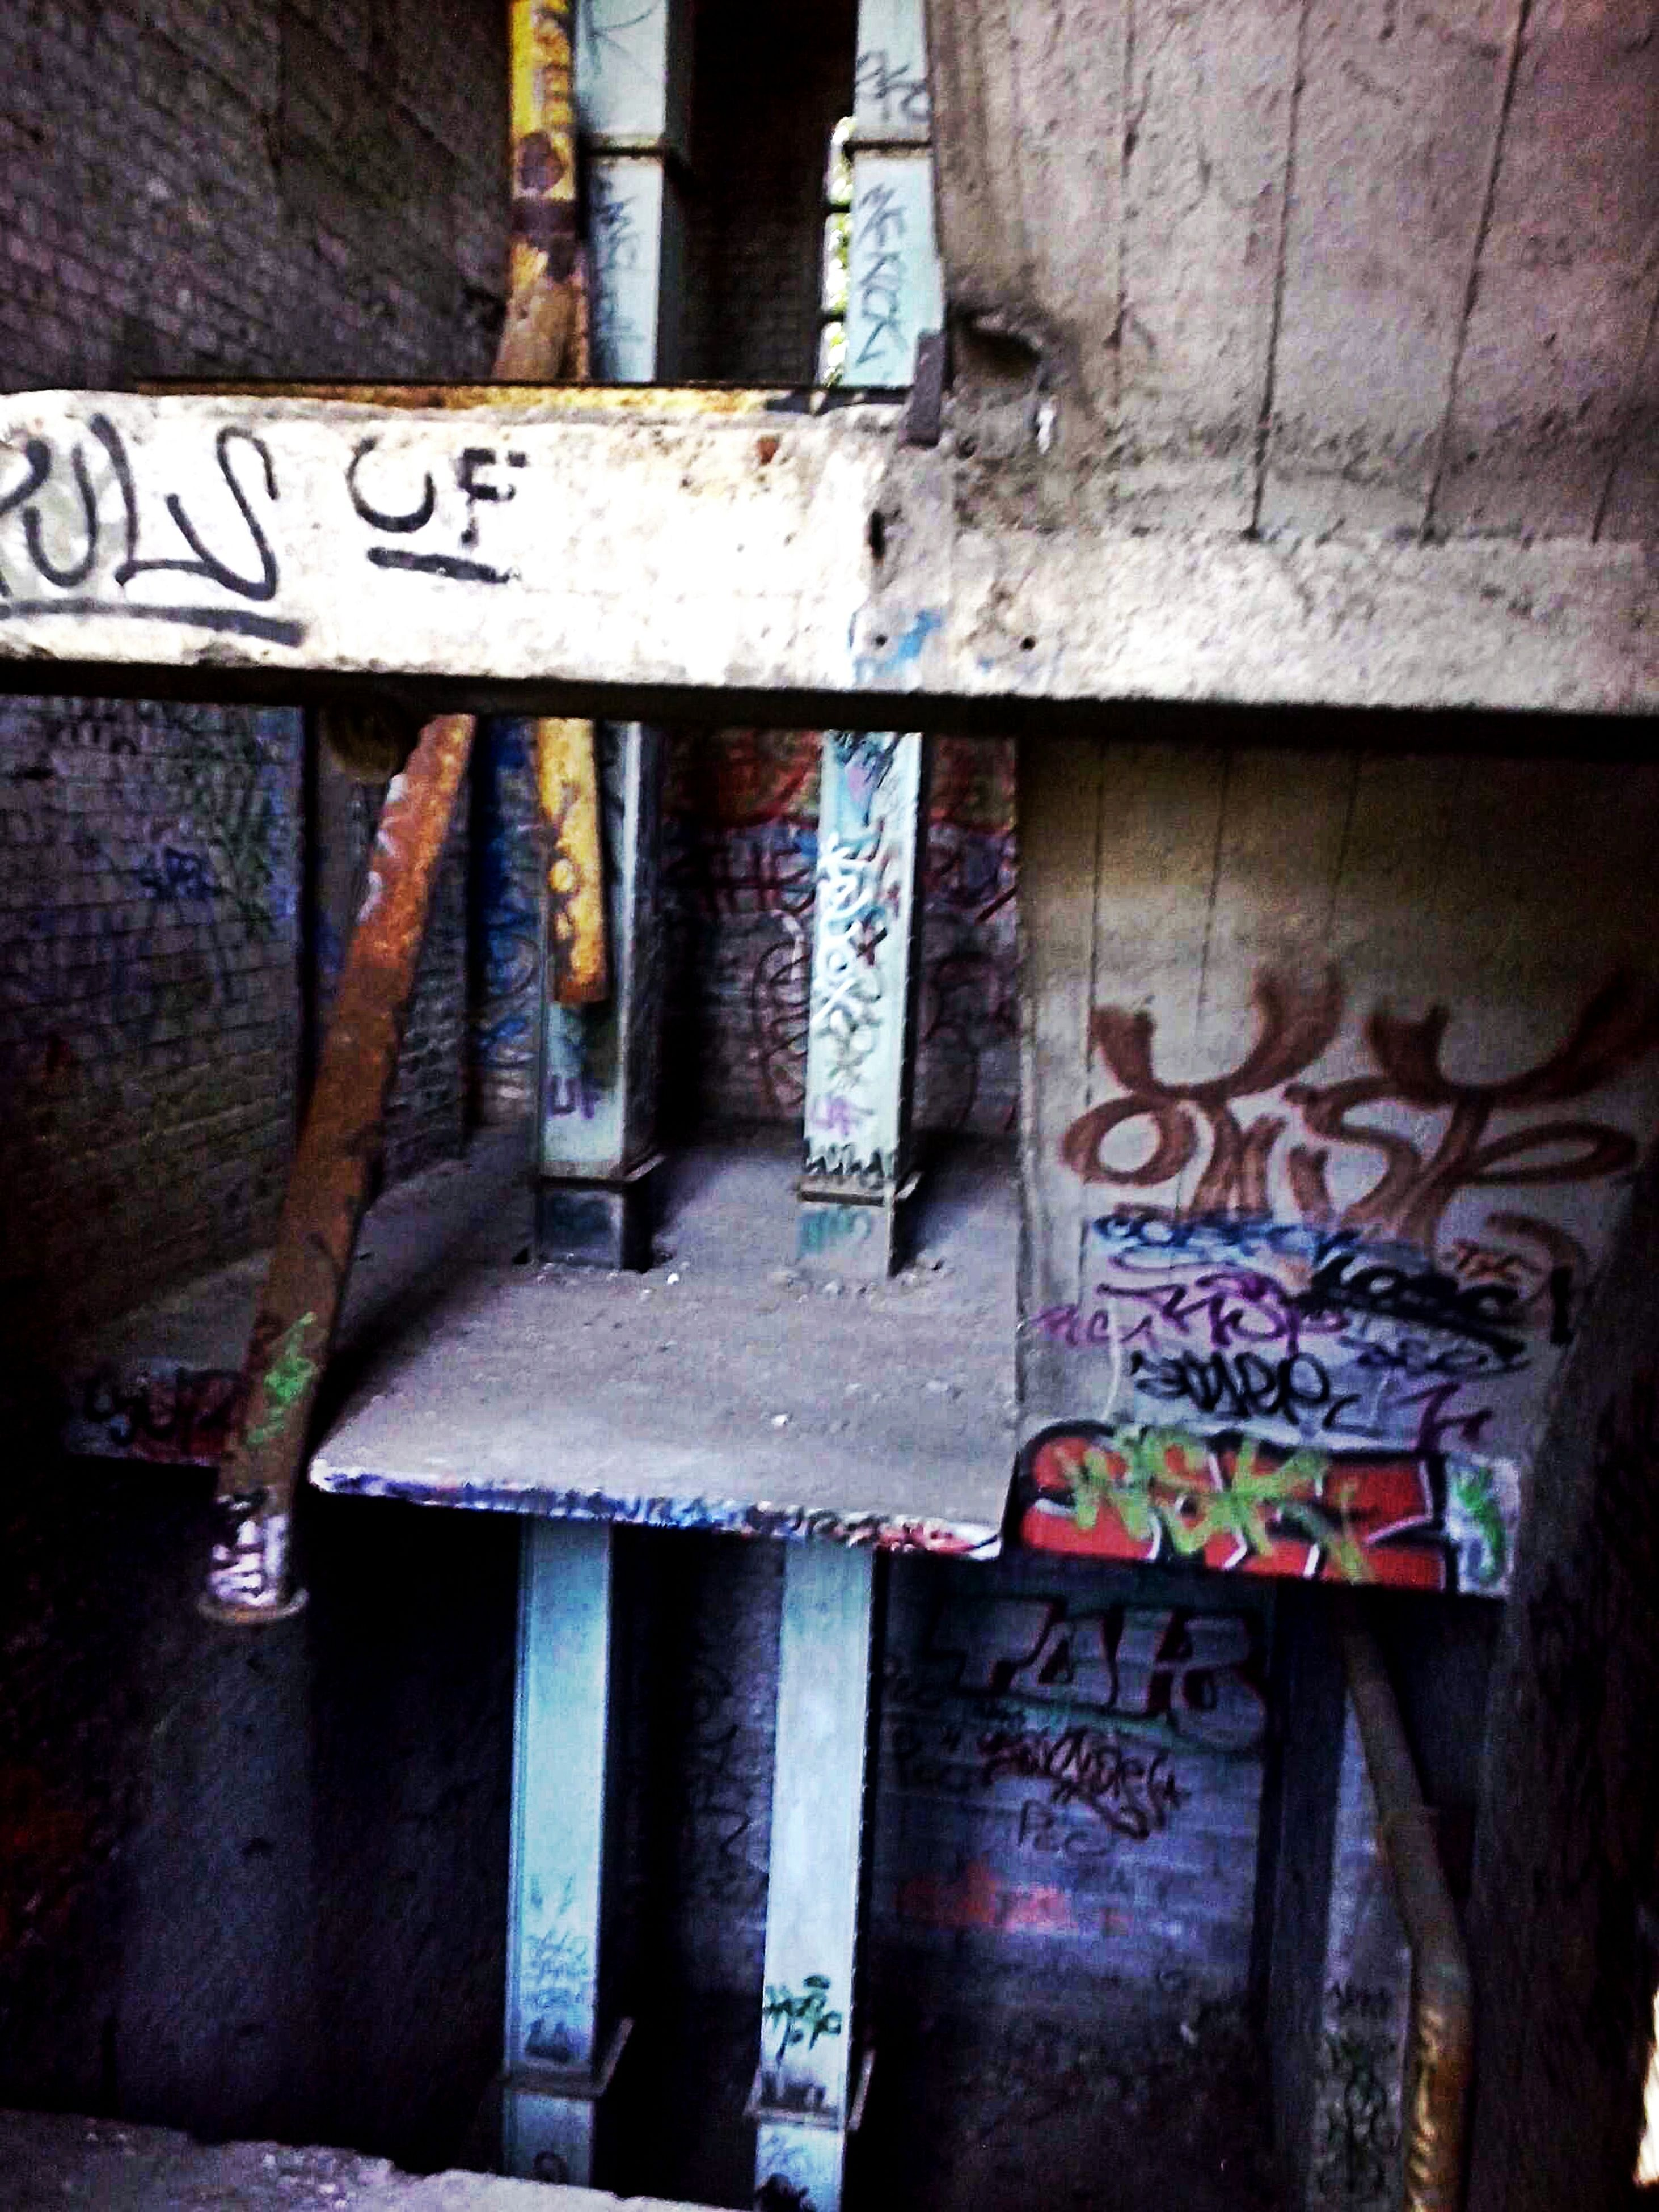 text, graffiti, architecture, old, built structure, wall - building feature, abandoned, obsolete, western script, indoors, damaged, wall, deterioration, run-down, weathered, communication, non-western script, building exterior, wood - material, no people